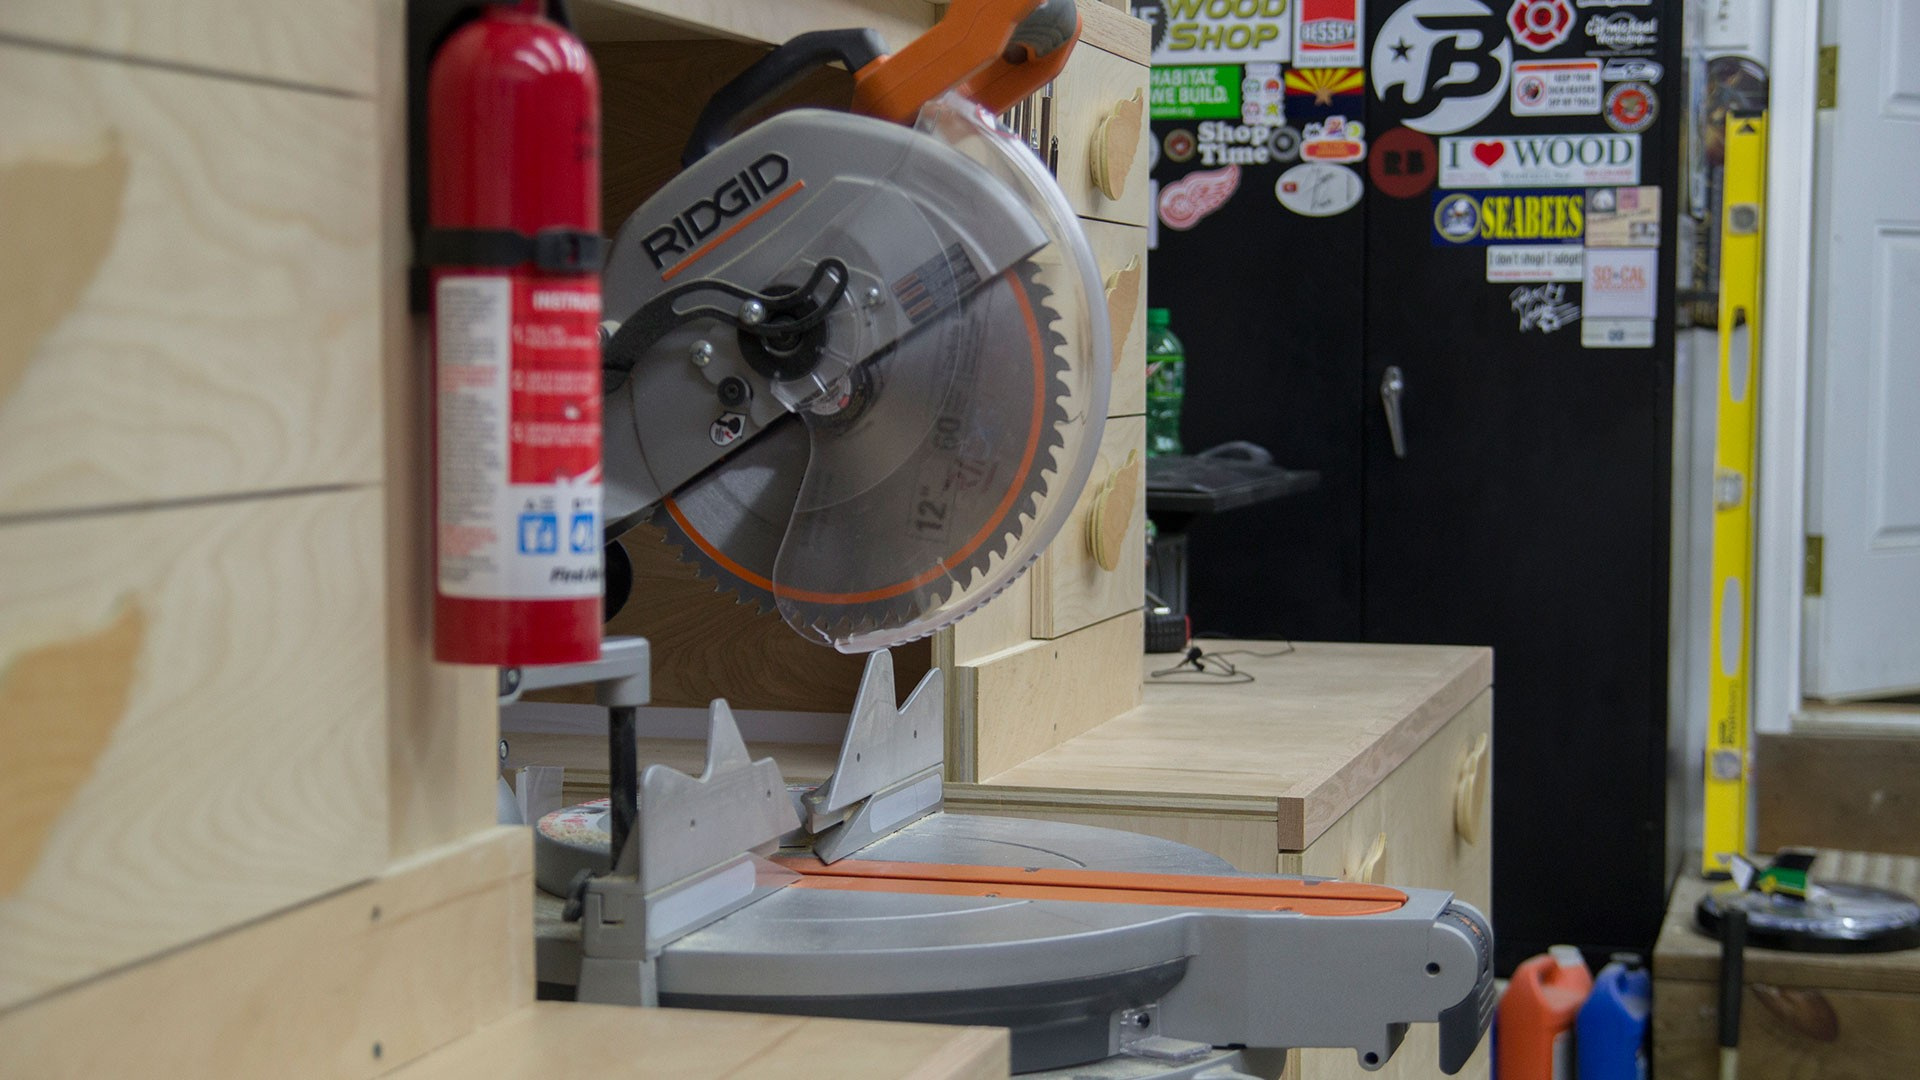 miter saw station storage boxes and drawer fronts (21)